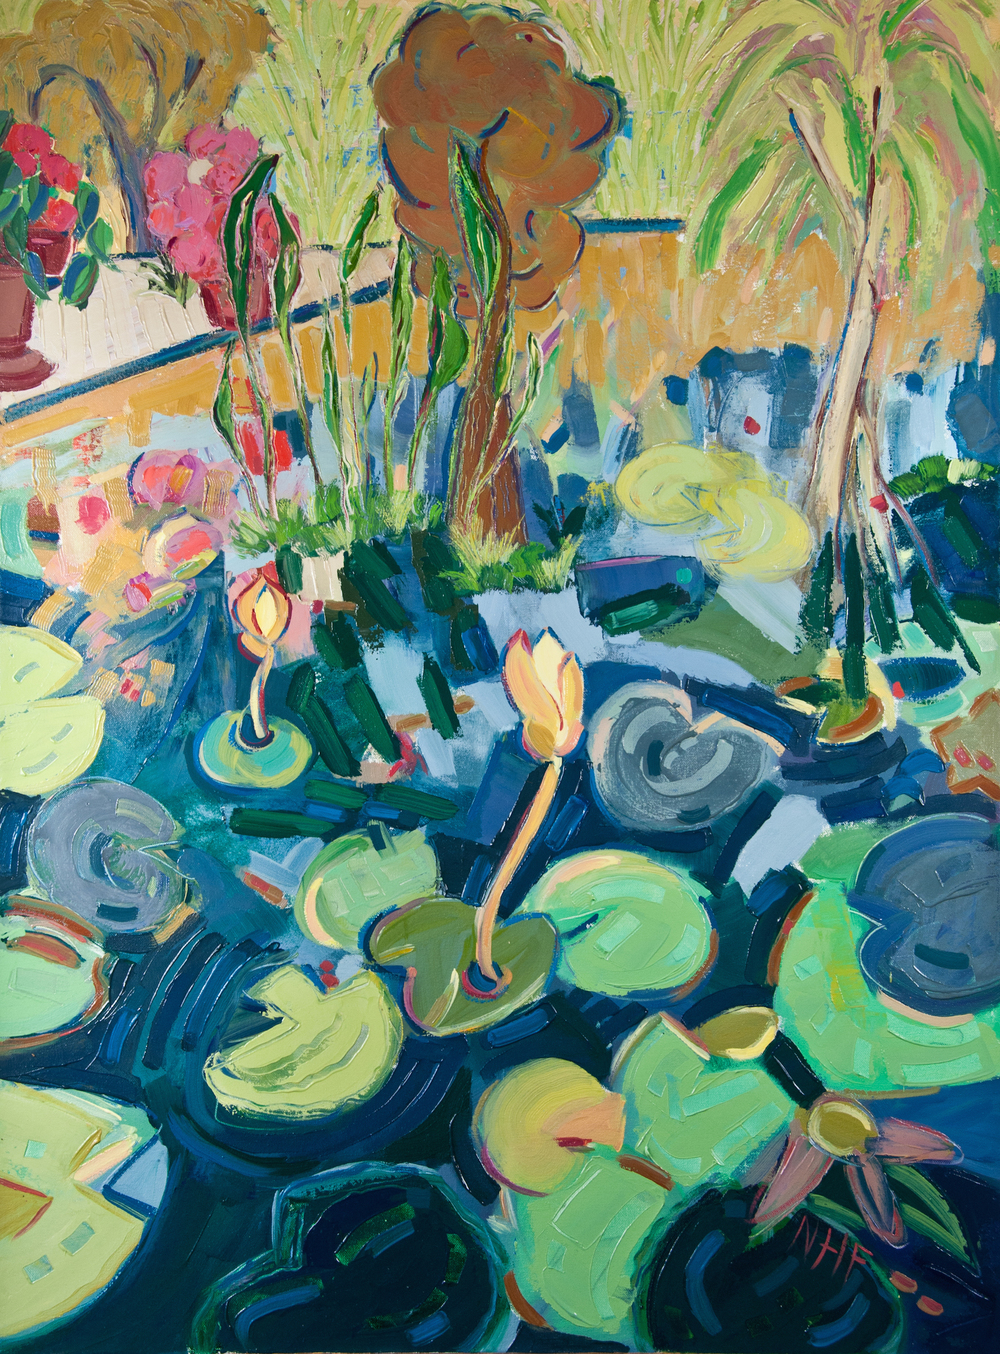 Water Lilies in the Botanical Gardens , oil on canvas, 40x30, $3,975